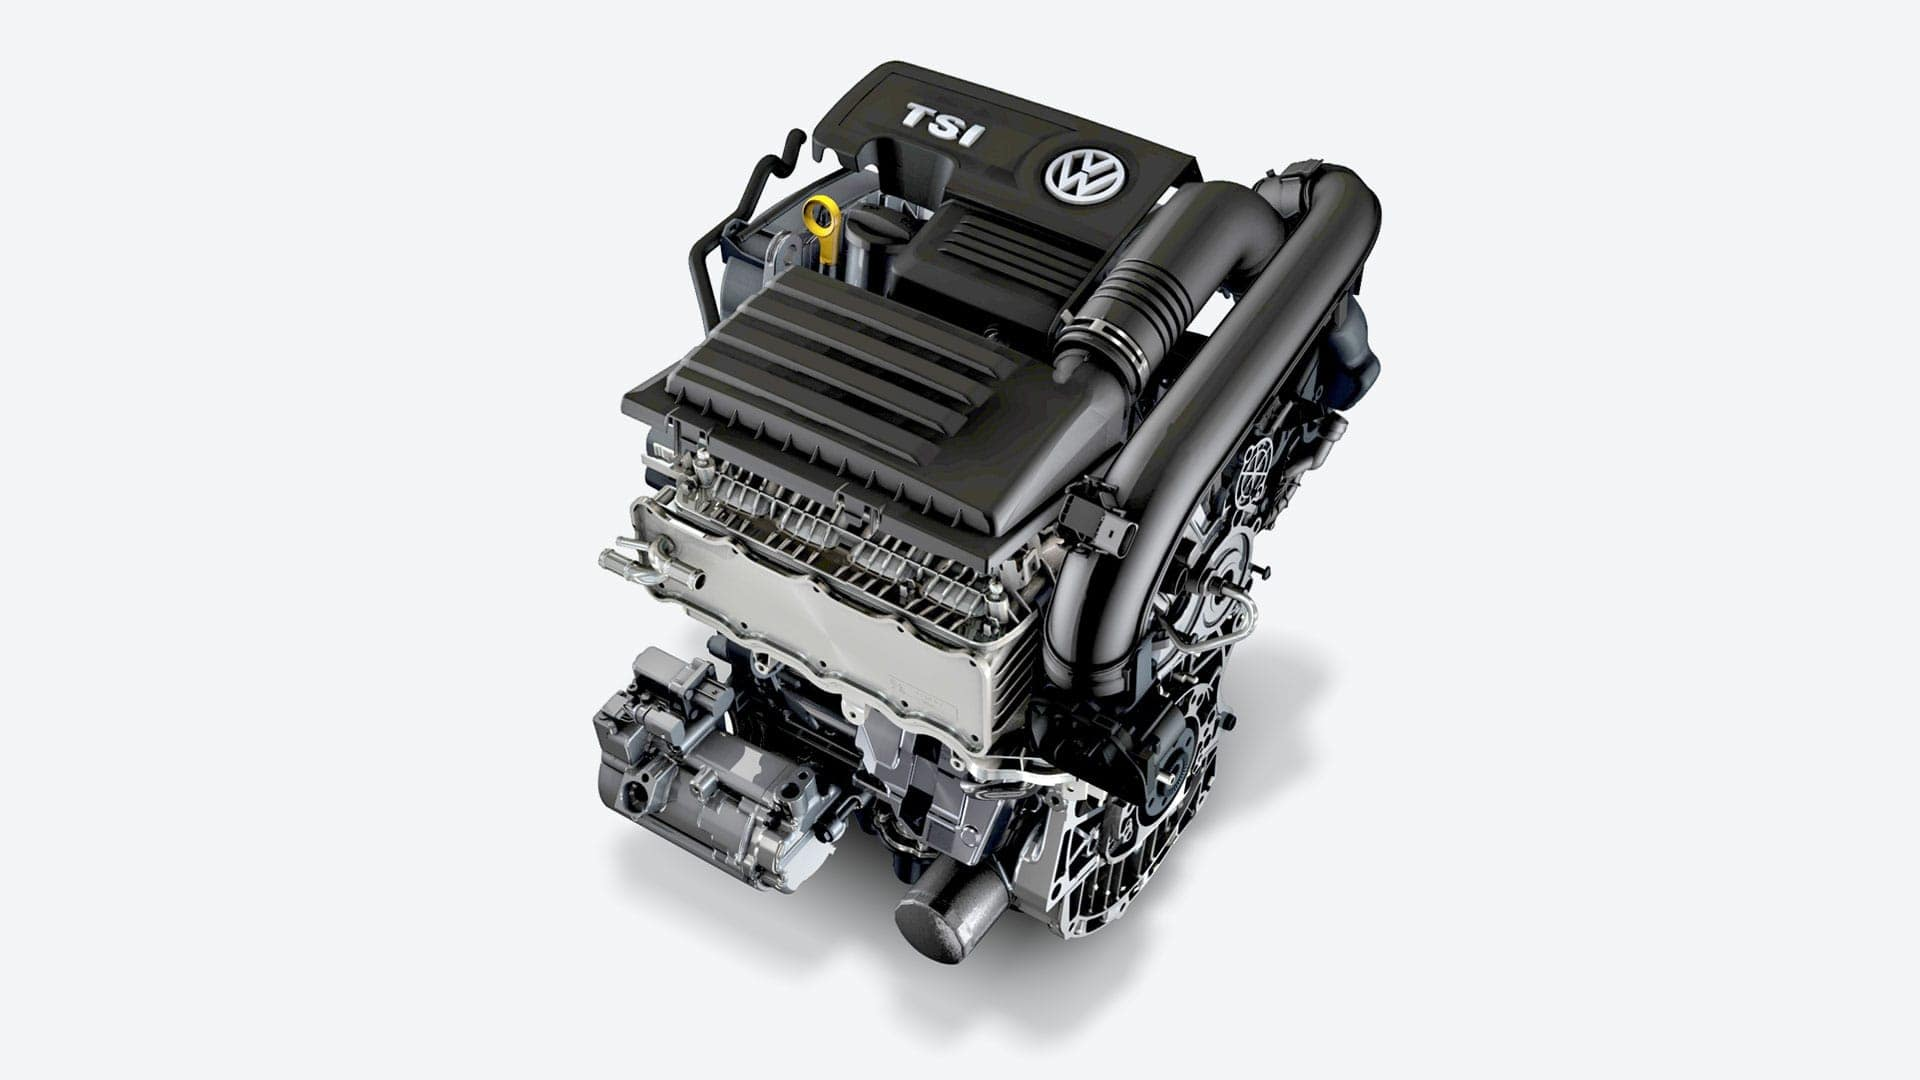 2019 VW Golf feature engine